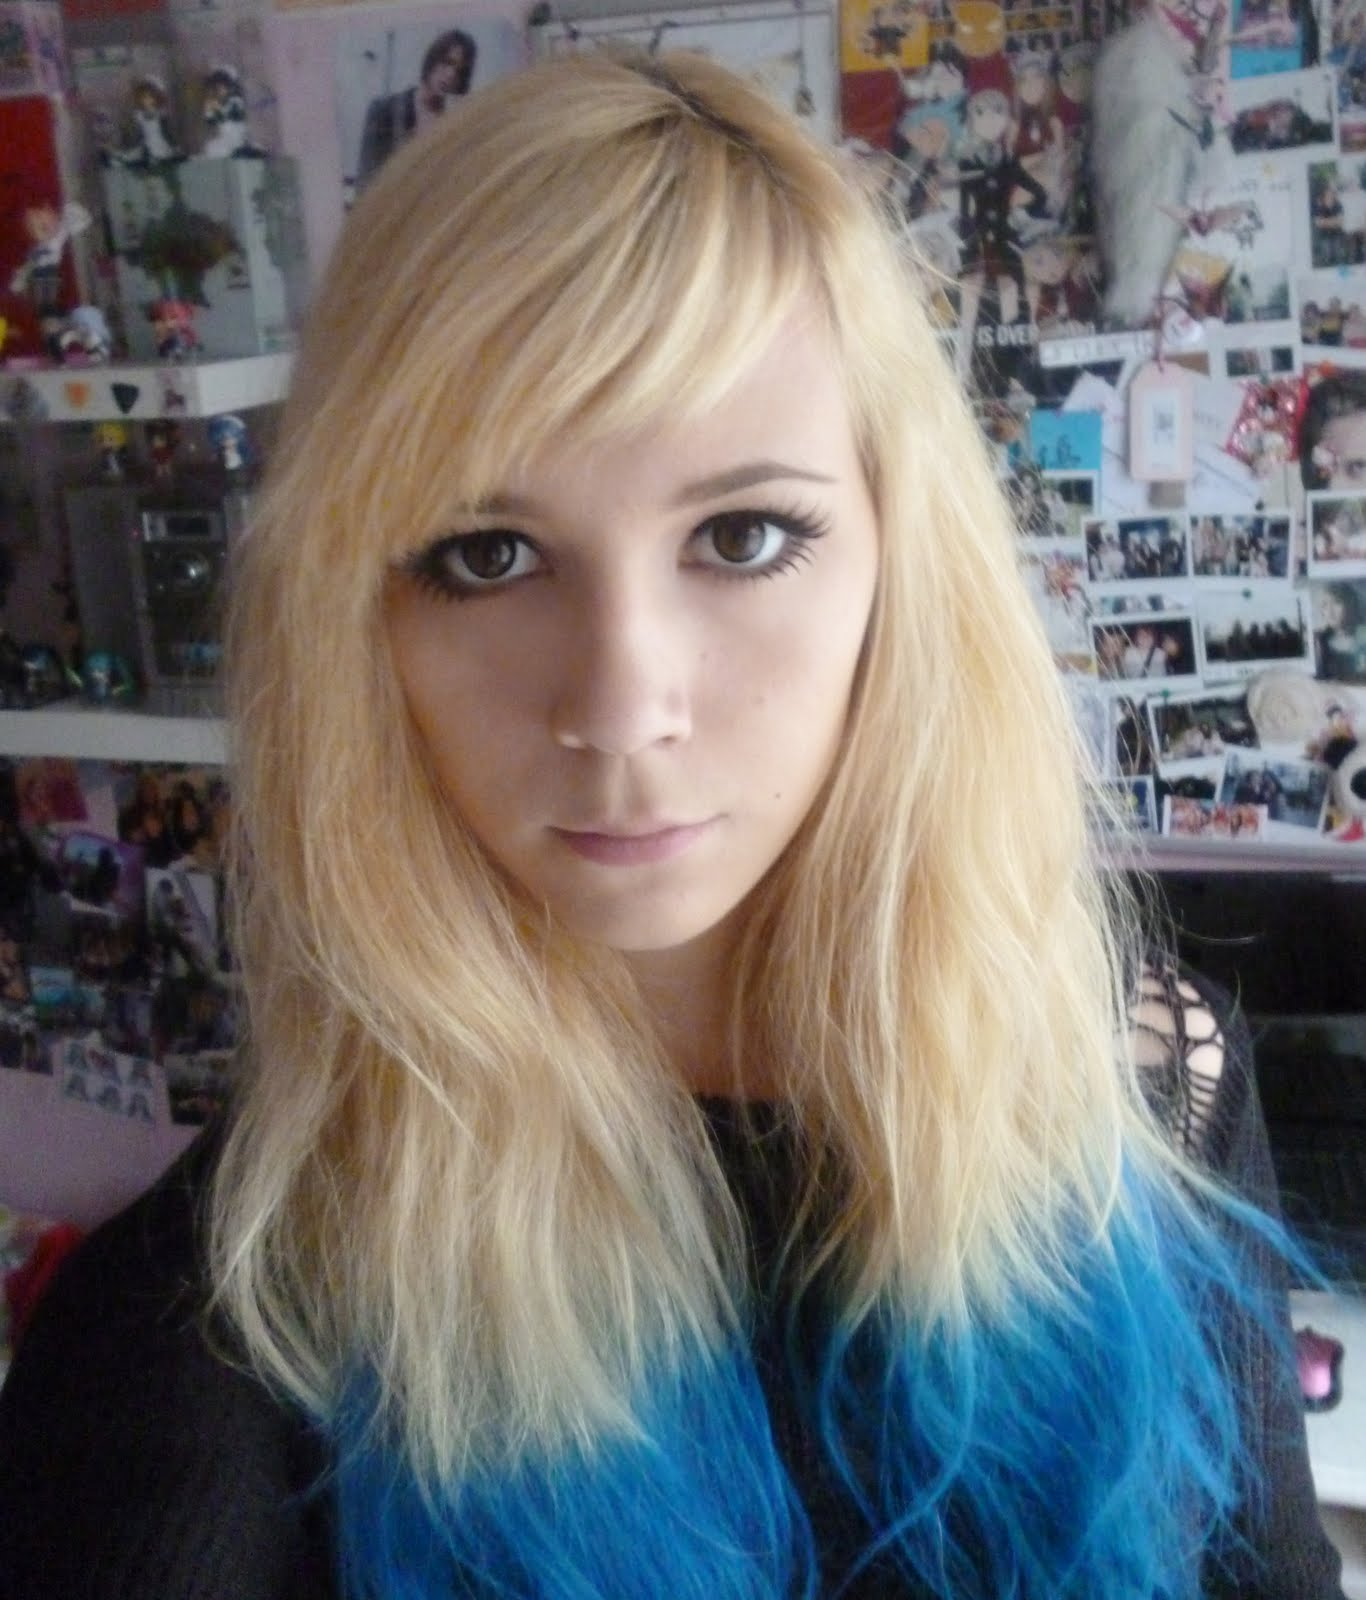 Blonde Hair Dye Turned Blue Welcome To The Madness Blue Dip Dye